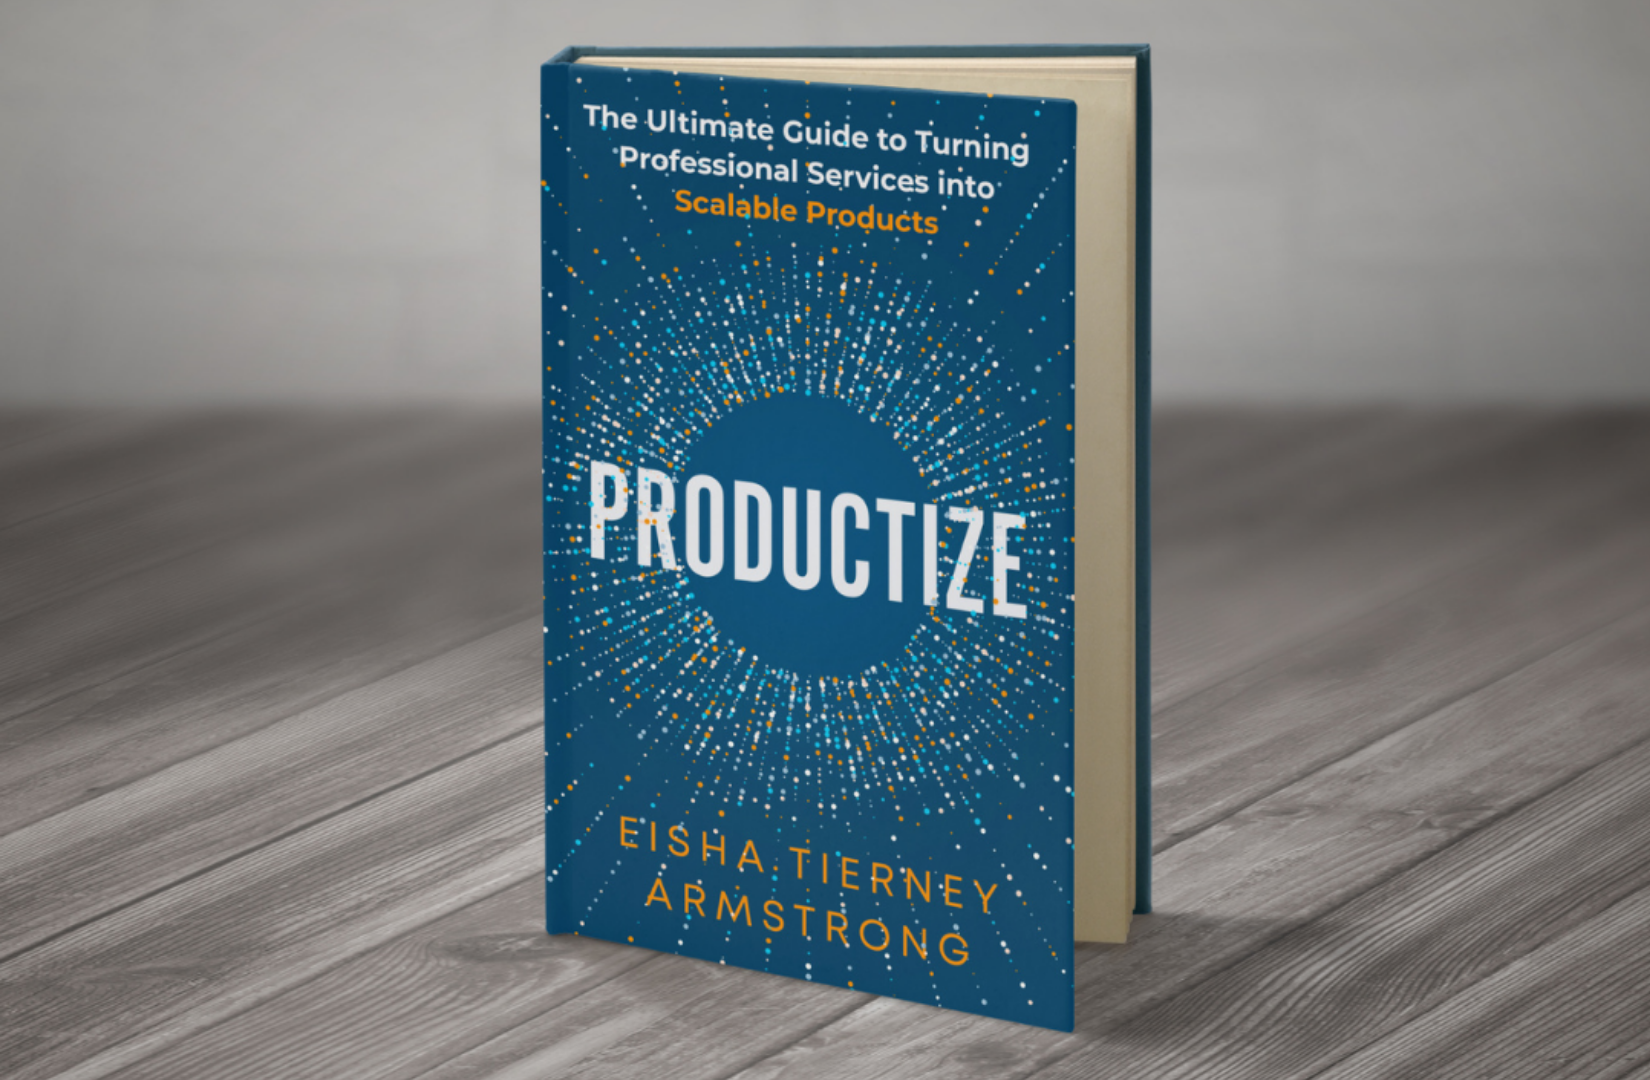 Sneak Peek At New Book For Professional Services Firms: PRODUCTIZE